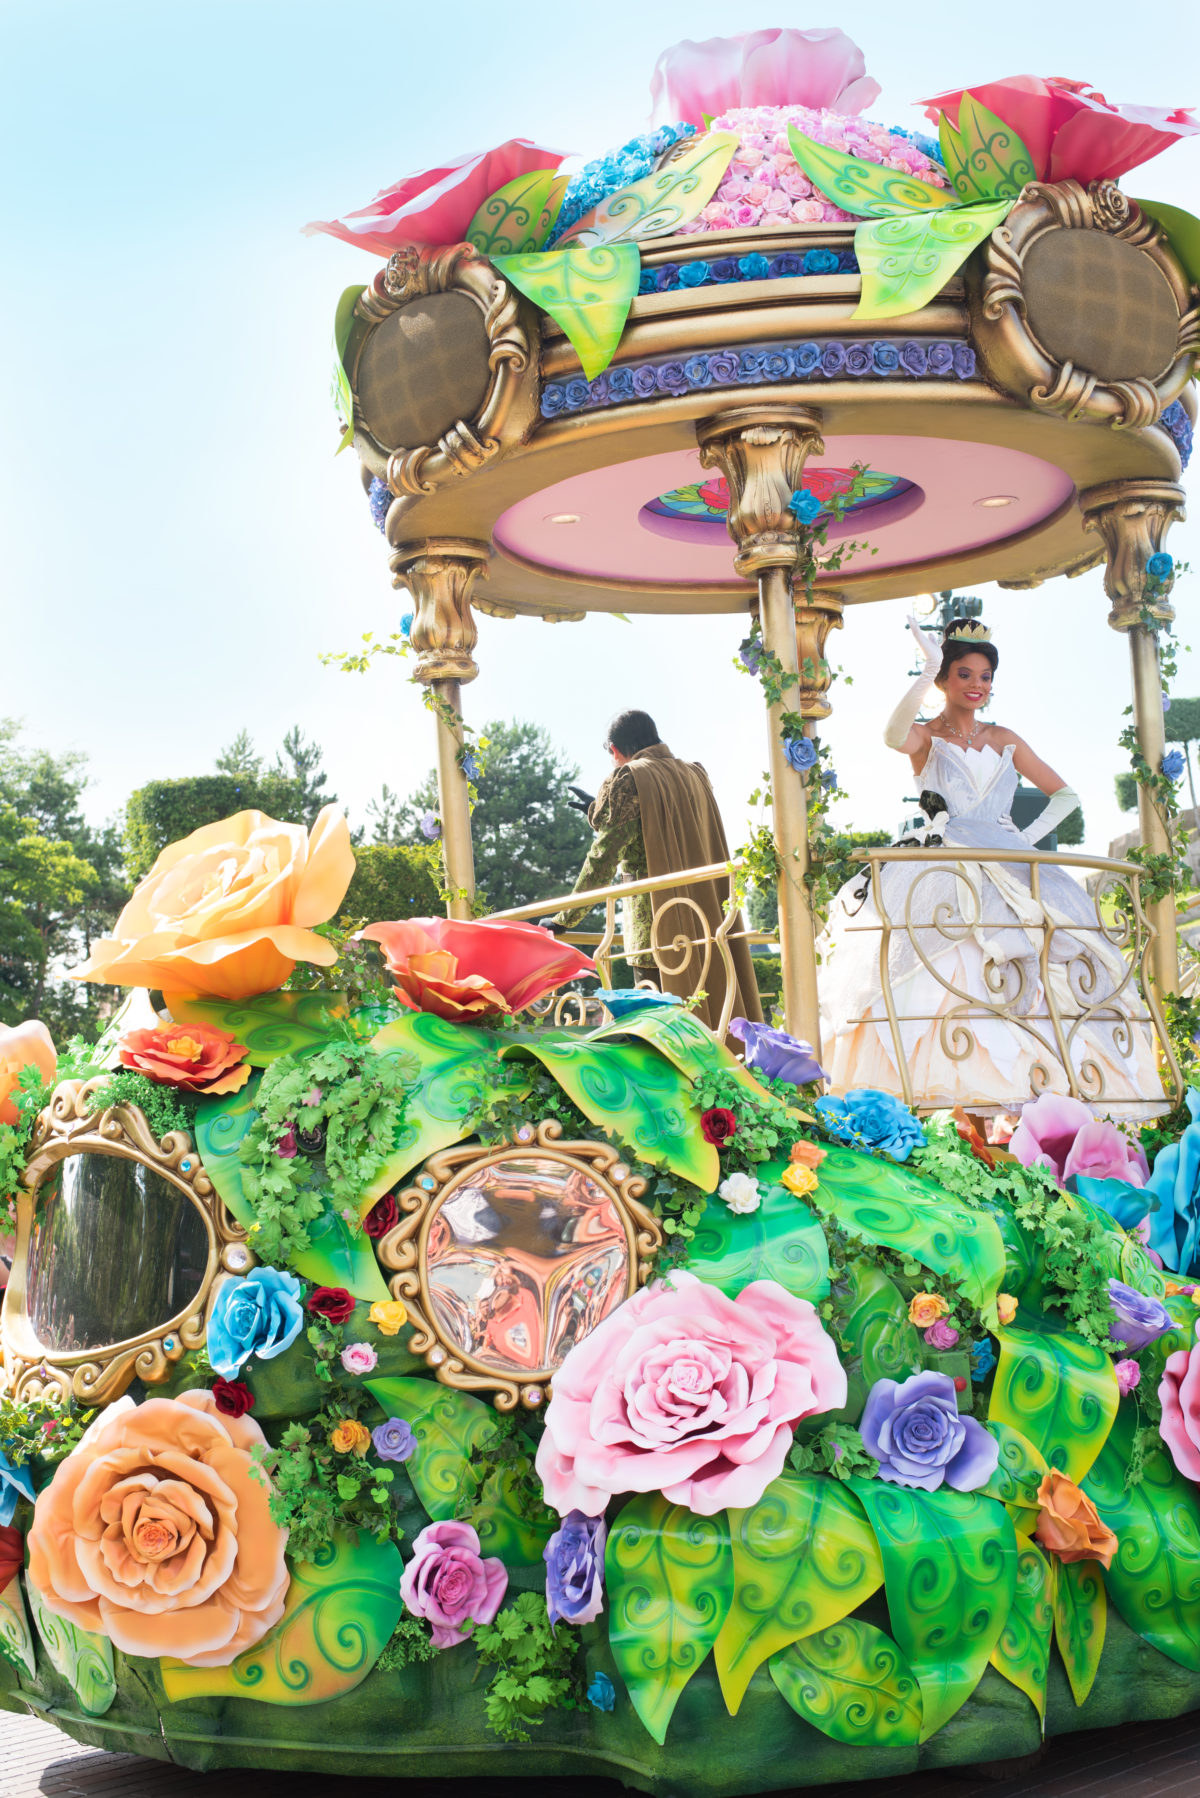 tiana princess and the frog parade